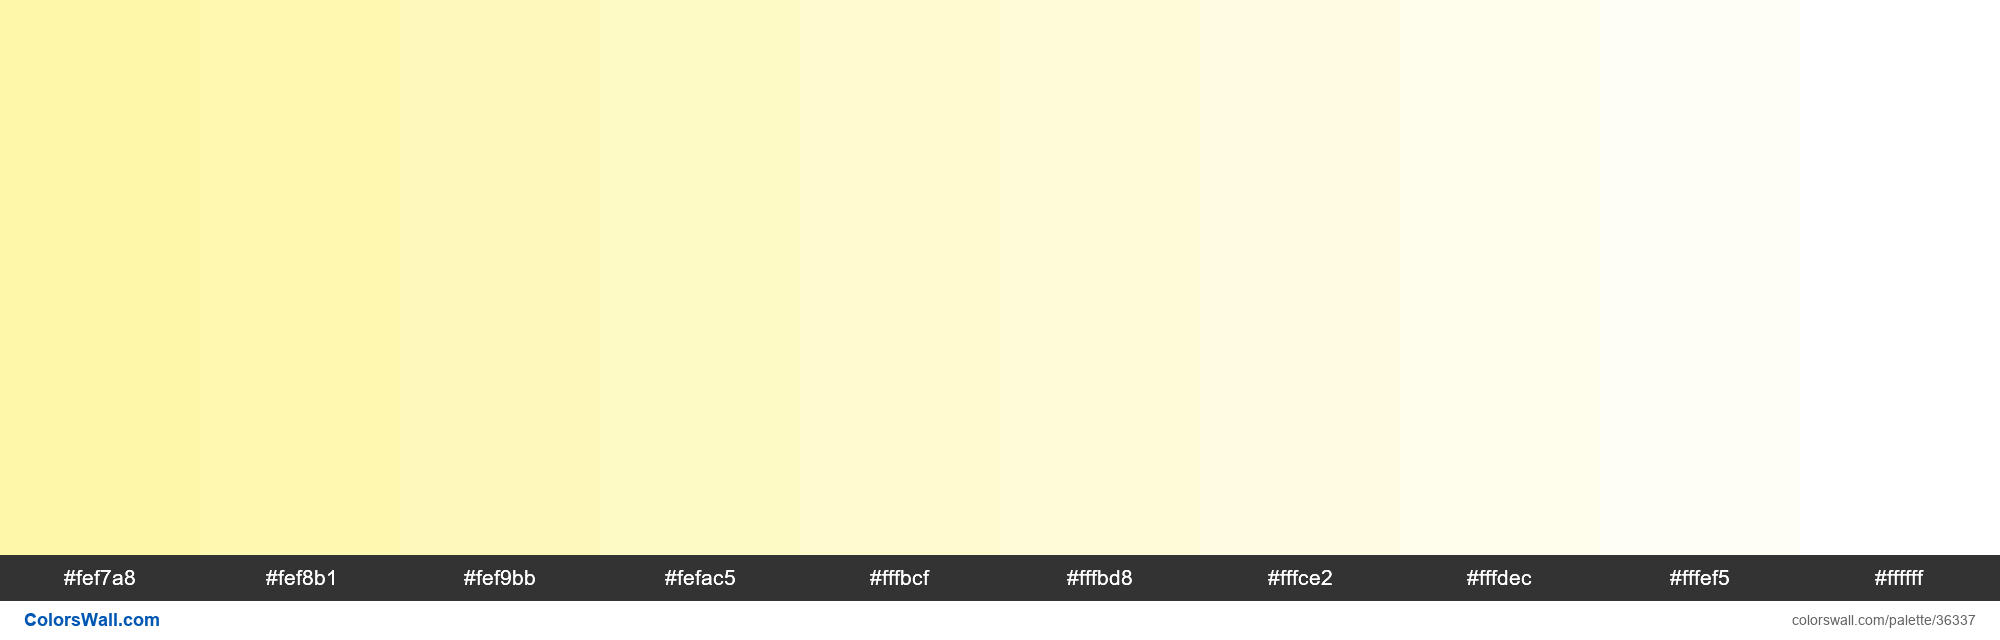 Tints XKCD Color buff #fef69e hex - #36337